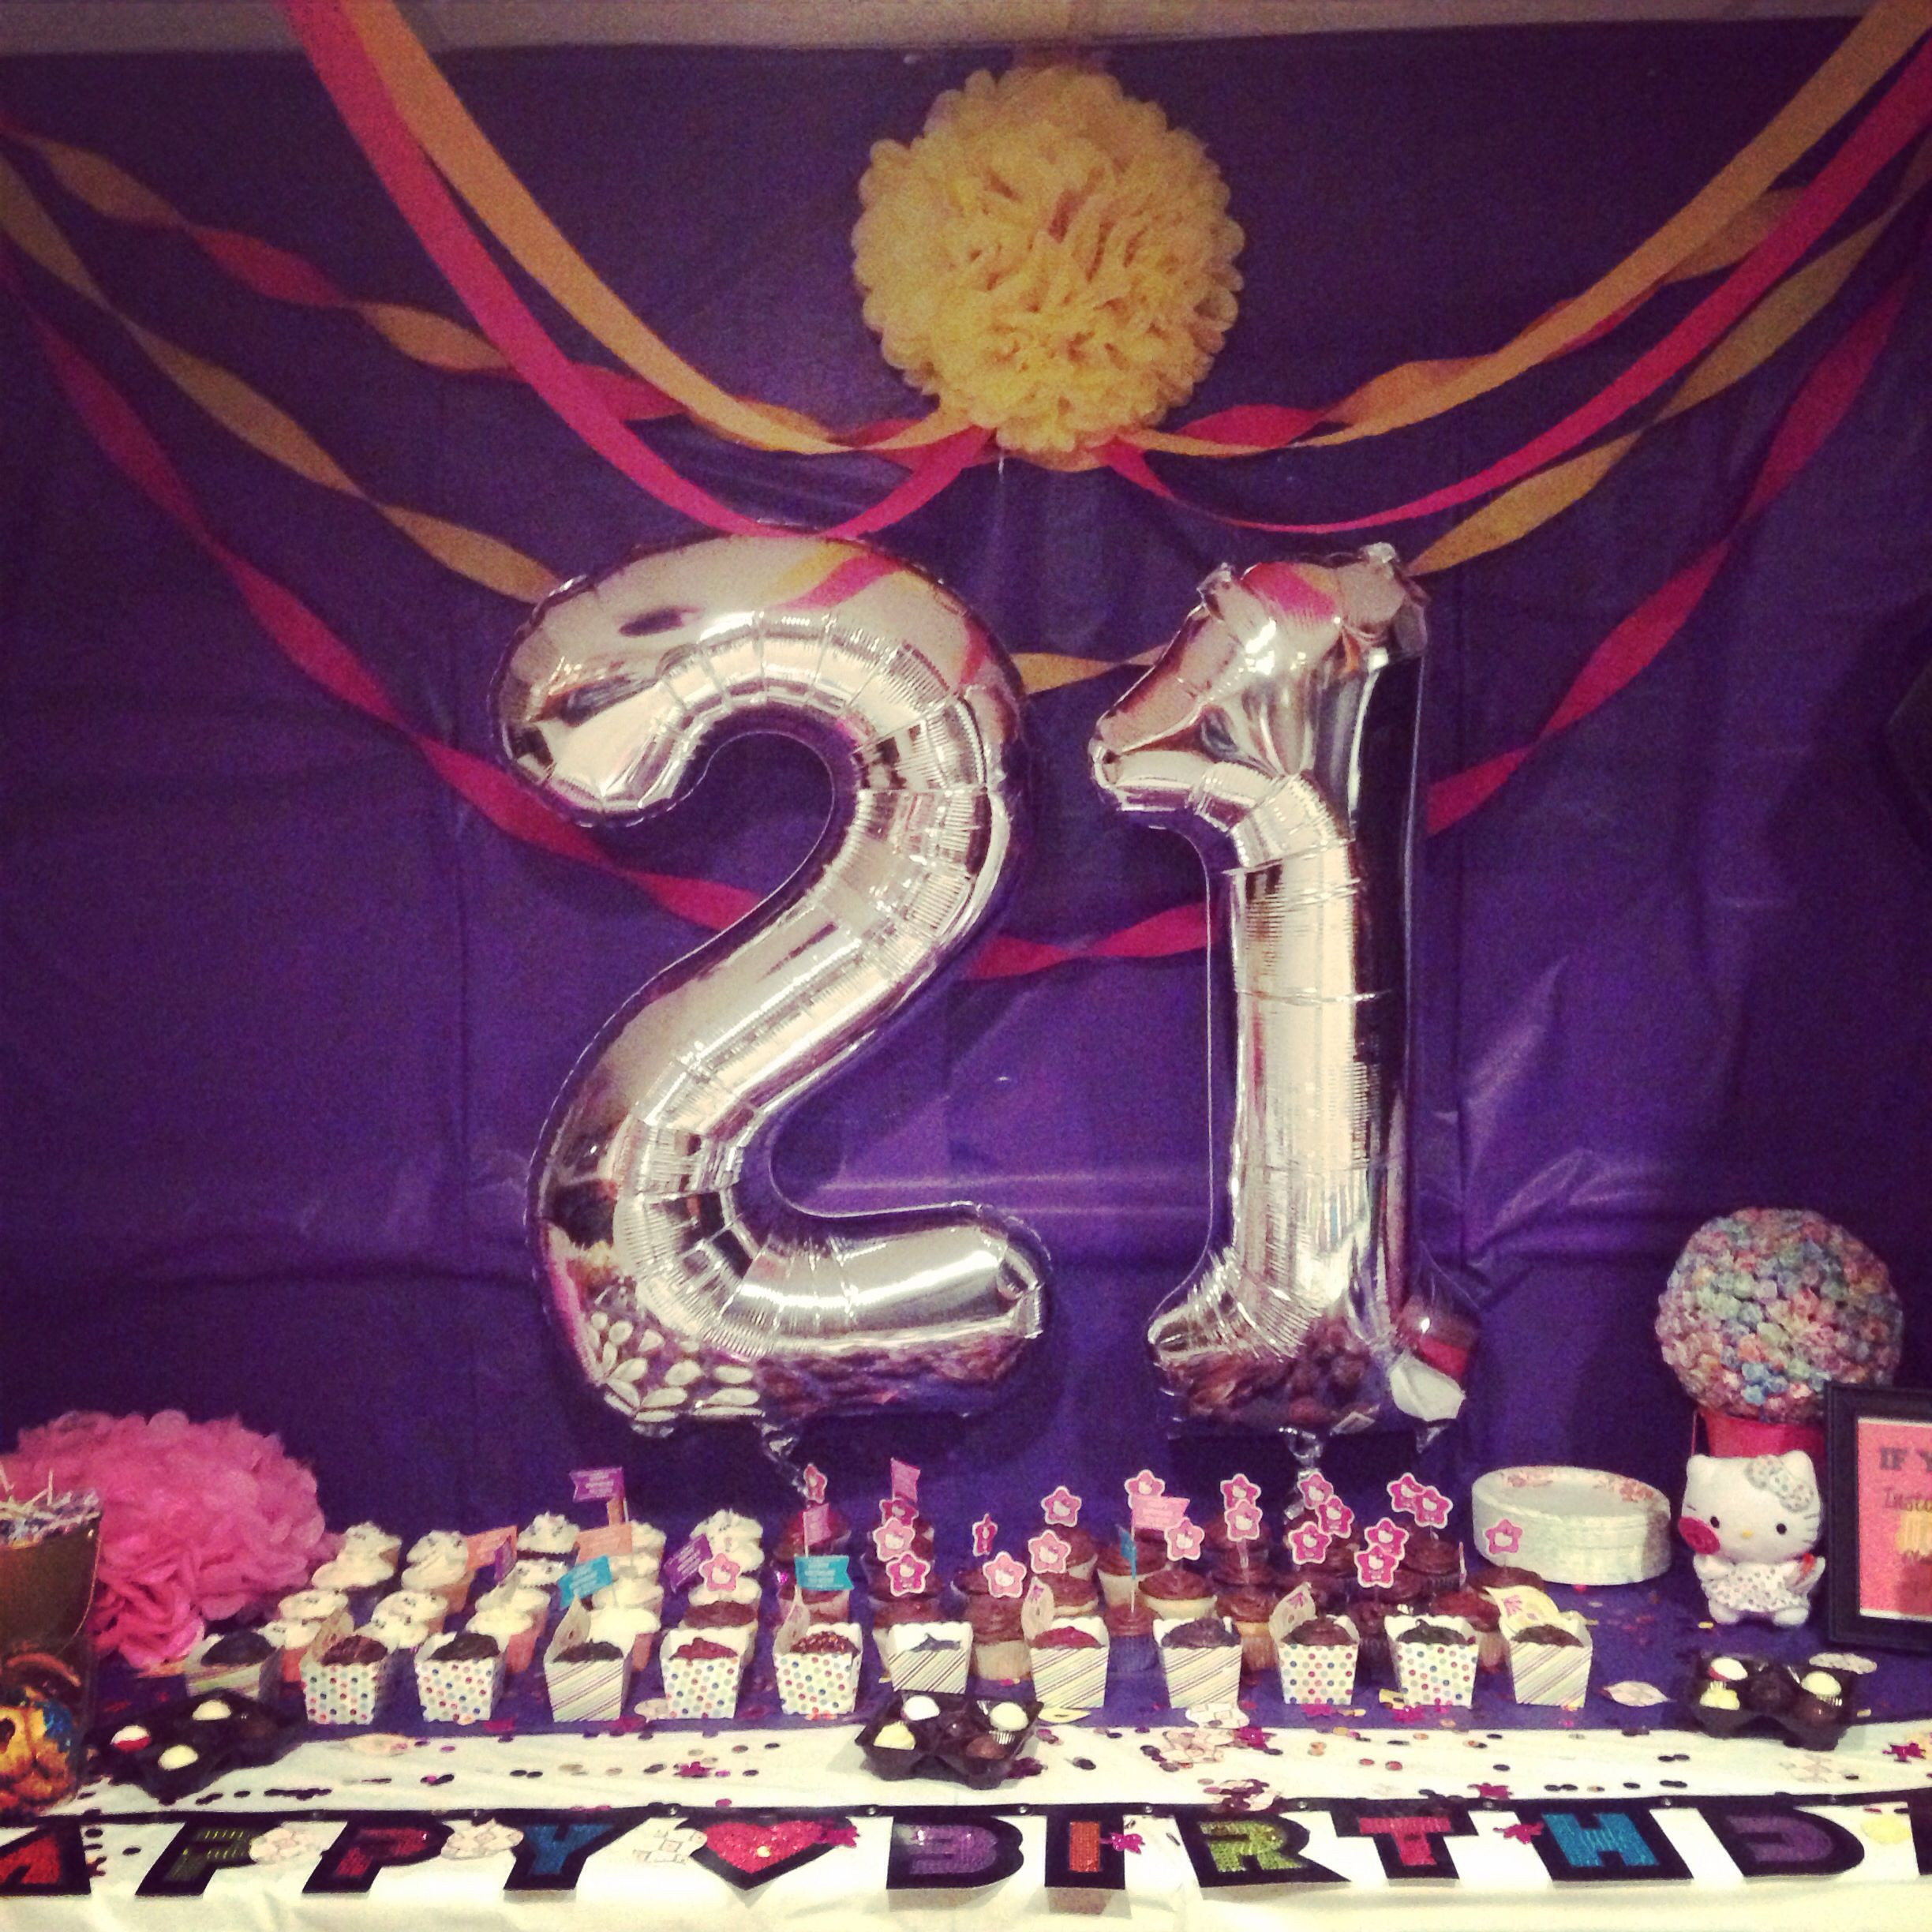 Best ideas about 21st Birthday Decorations . Save or Pin 21st birthday decorations Party Decor Now.